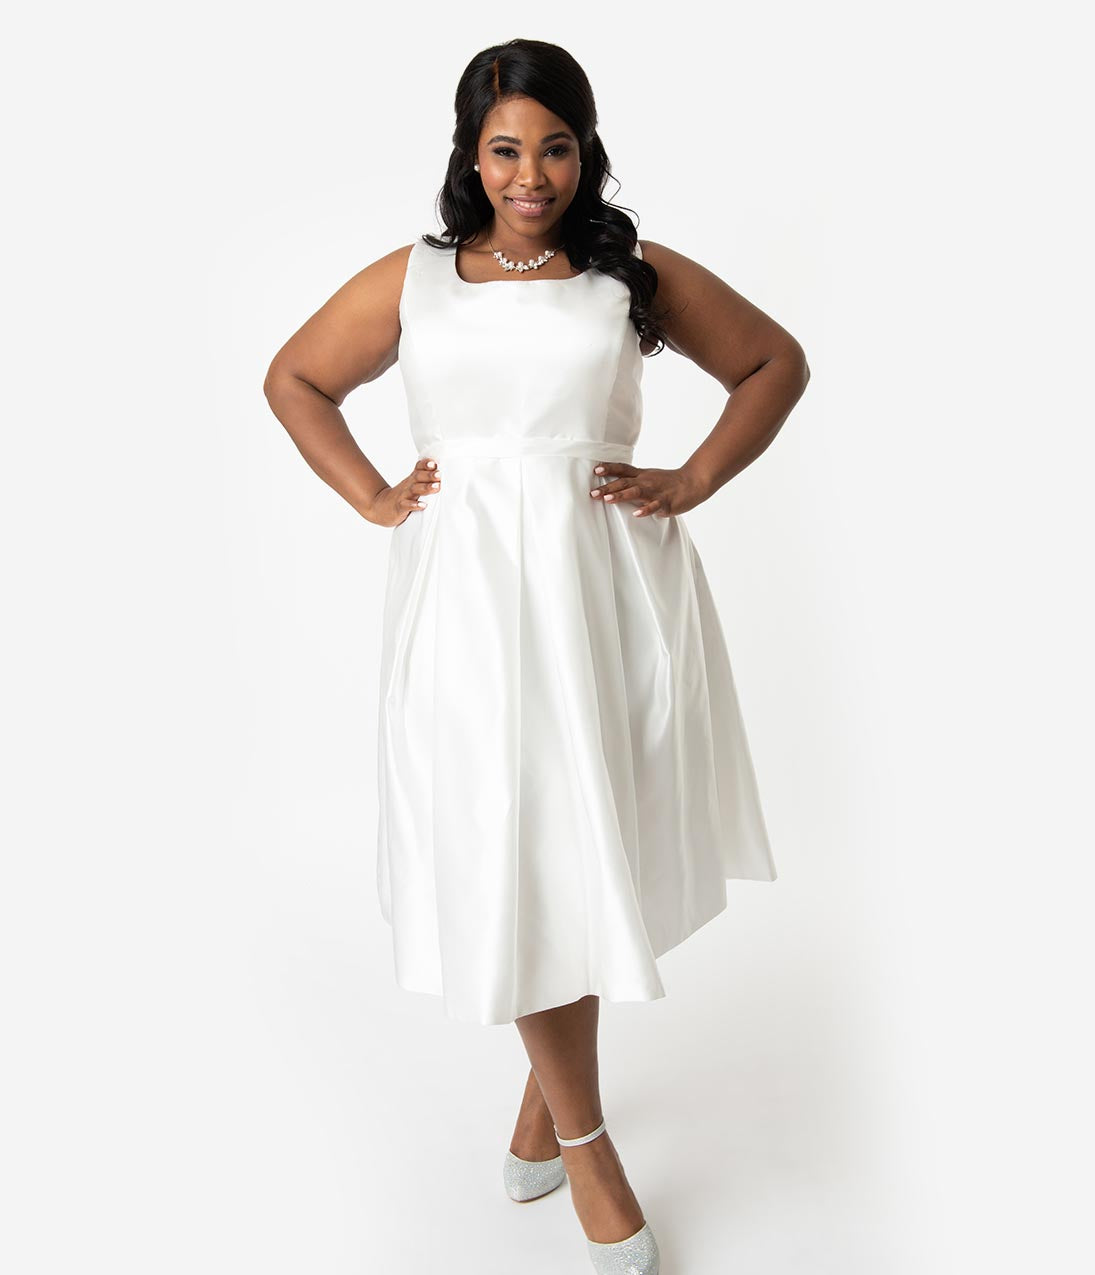 What Did Women Wear in the 1950s? 1950s Fashion Guide Unique Vintage Plus Size 1950S Style Ivory Satin Sleeveless Maxime Wedding Dress $198.00 AT vintagedancer.com